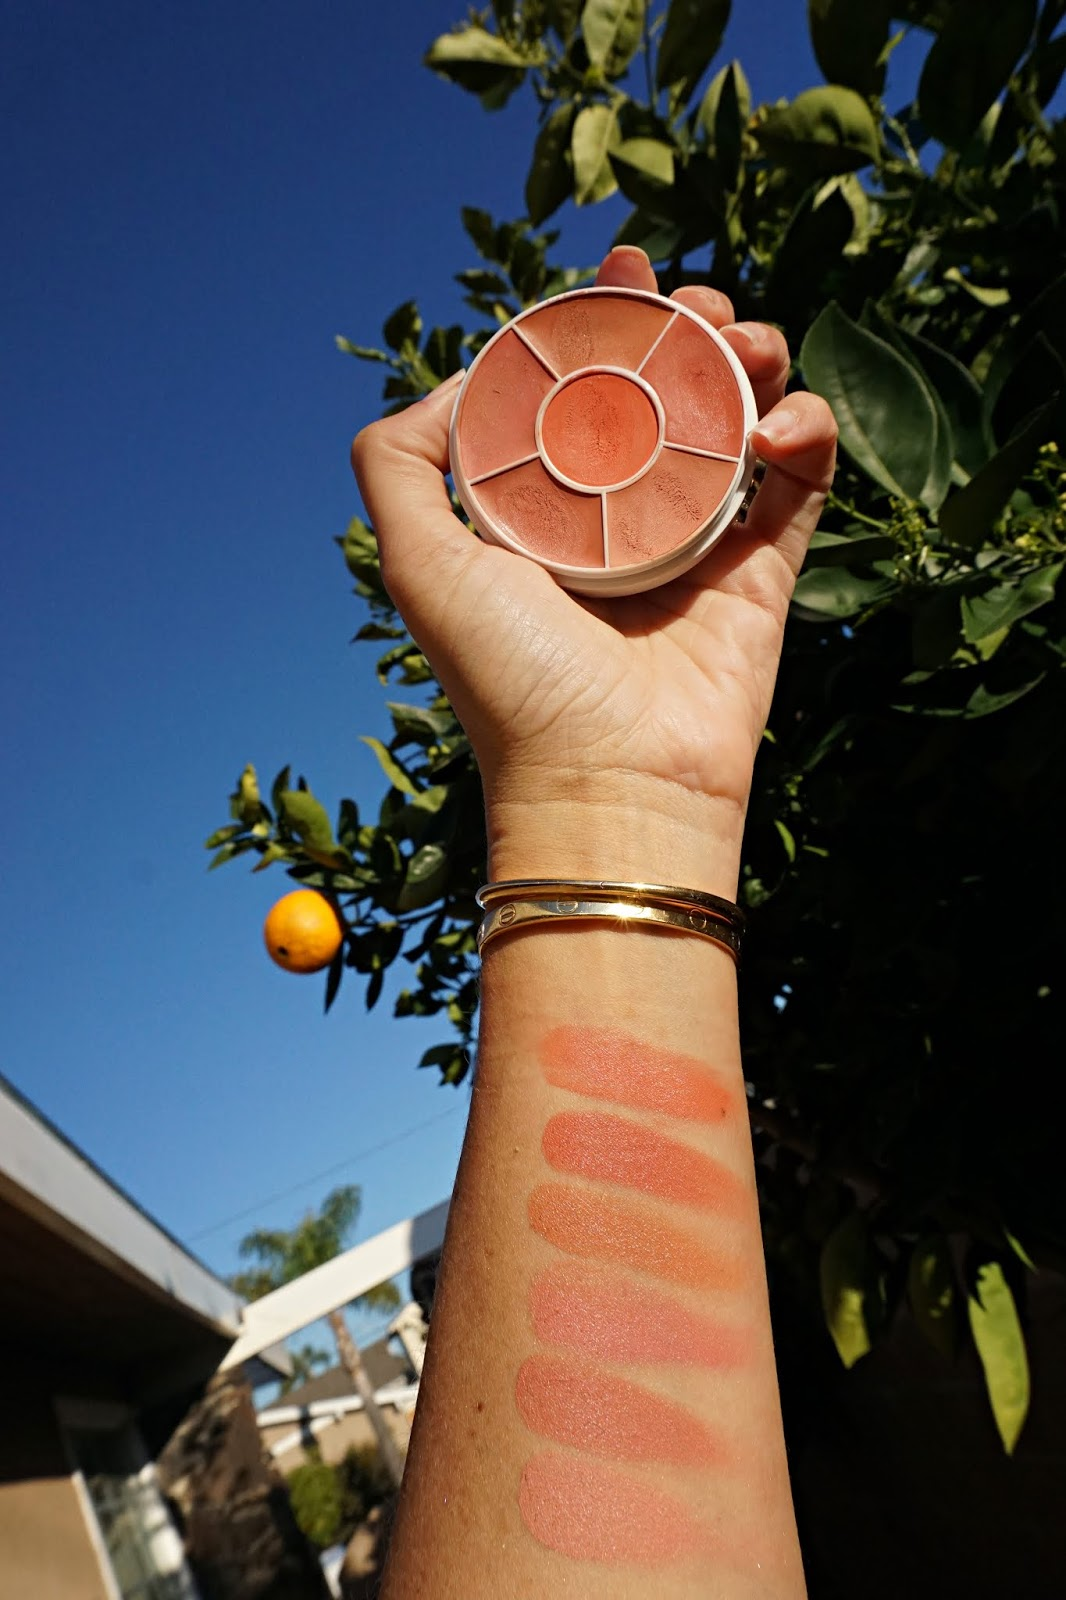 Ben Nye Creme Rouge Wheel in Natural Glow swatches